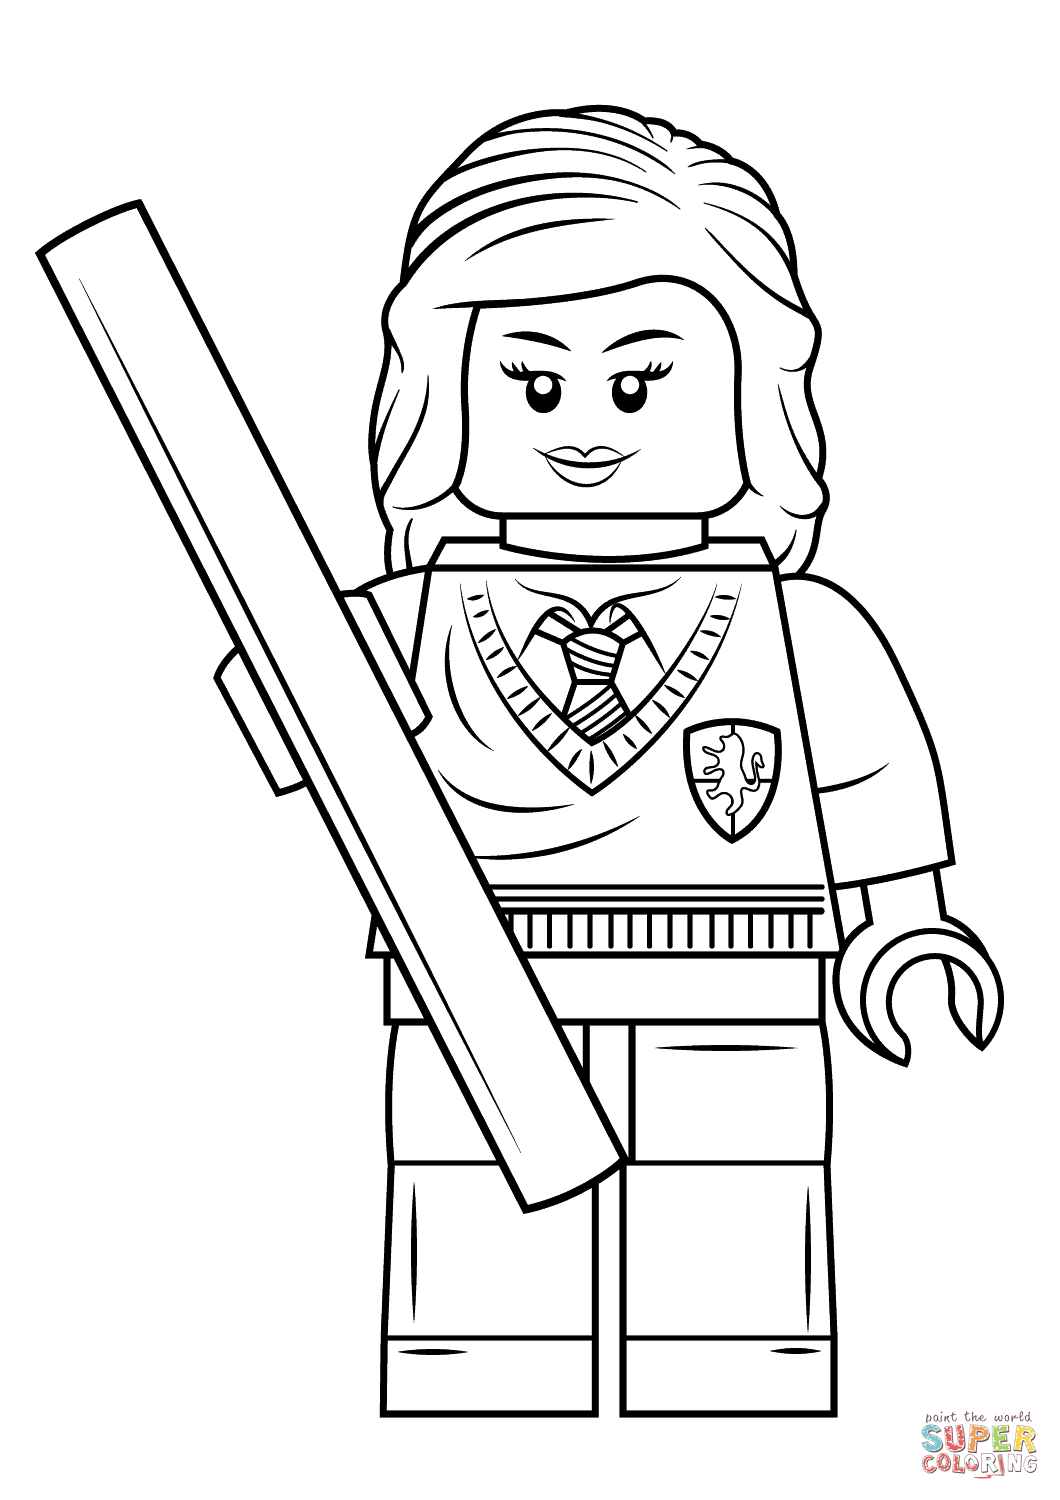 1060x1500 Lego Hermione Granger Coloring Page Free Printable Coloring